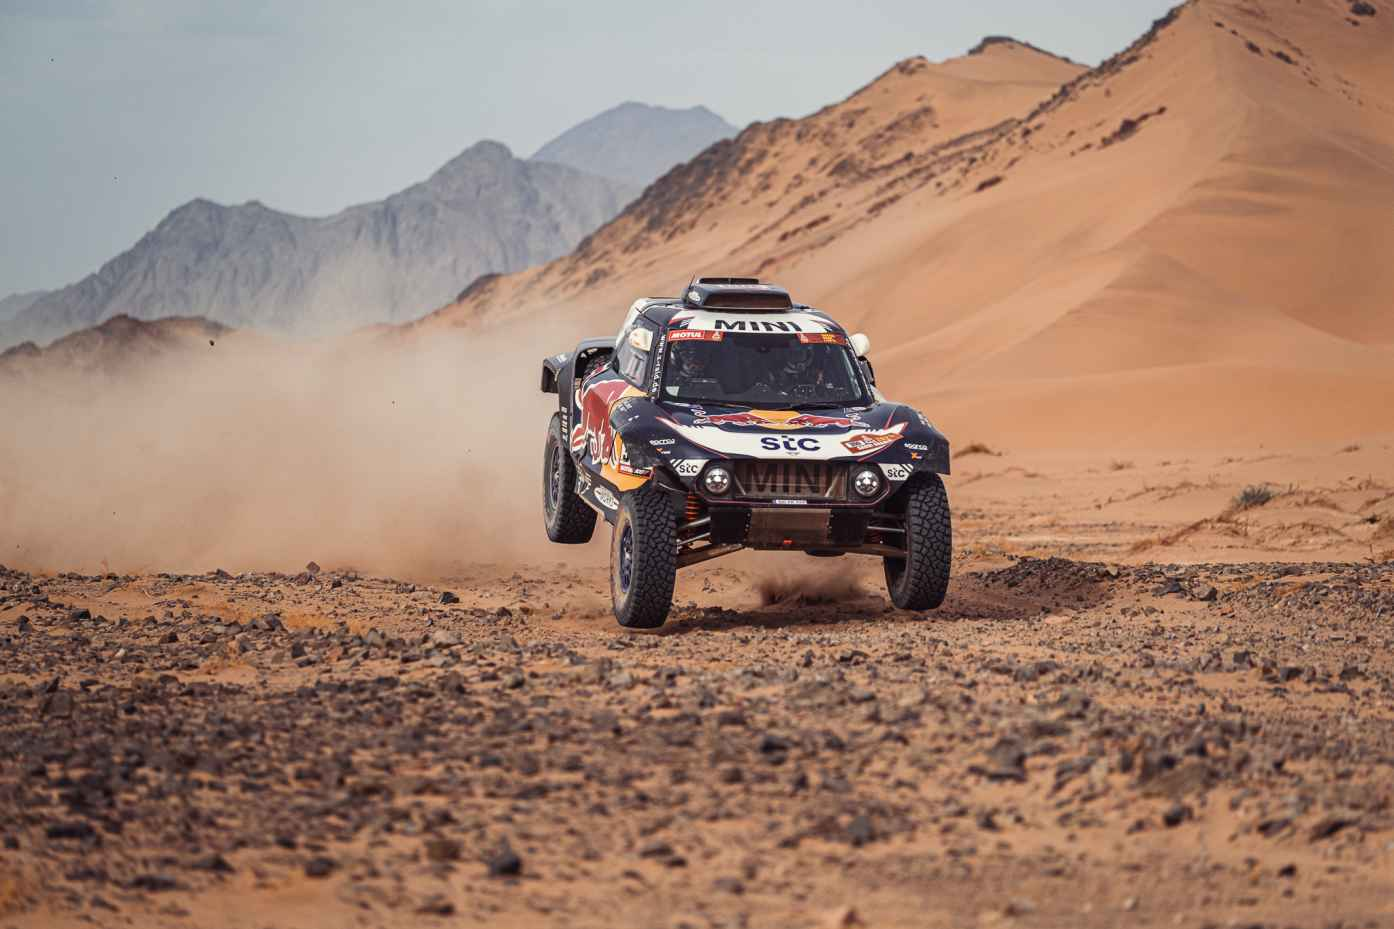 Home / 2021 / Dakar Rally / Stage 11 / #300 Sainz / Cruz / M21X6122